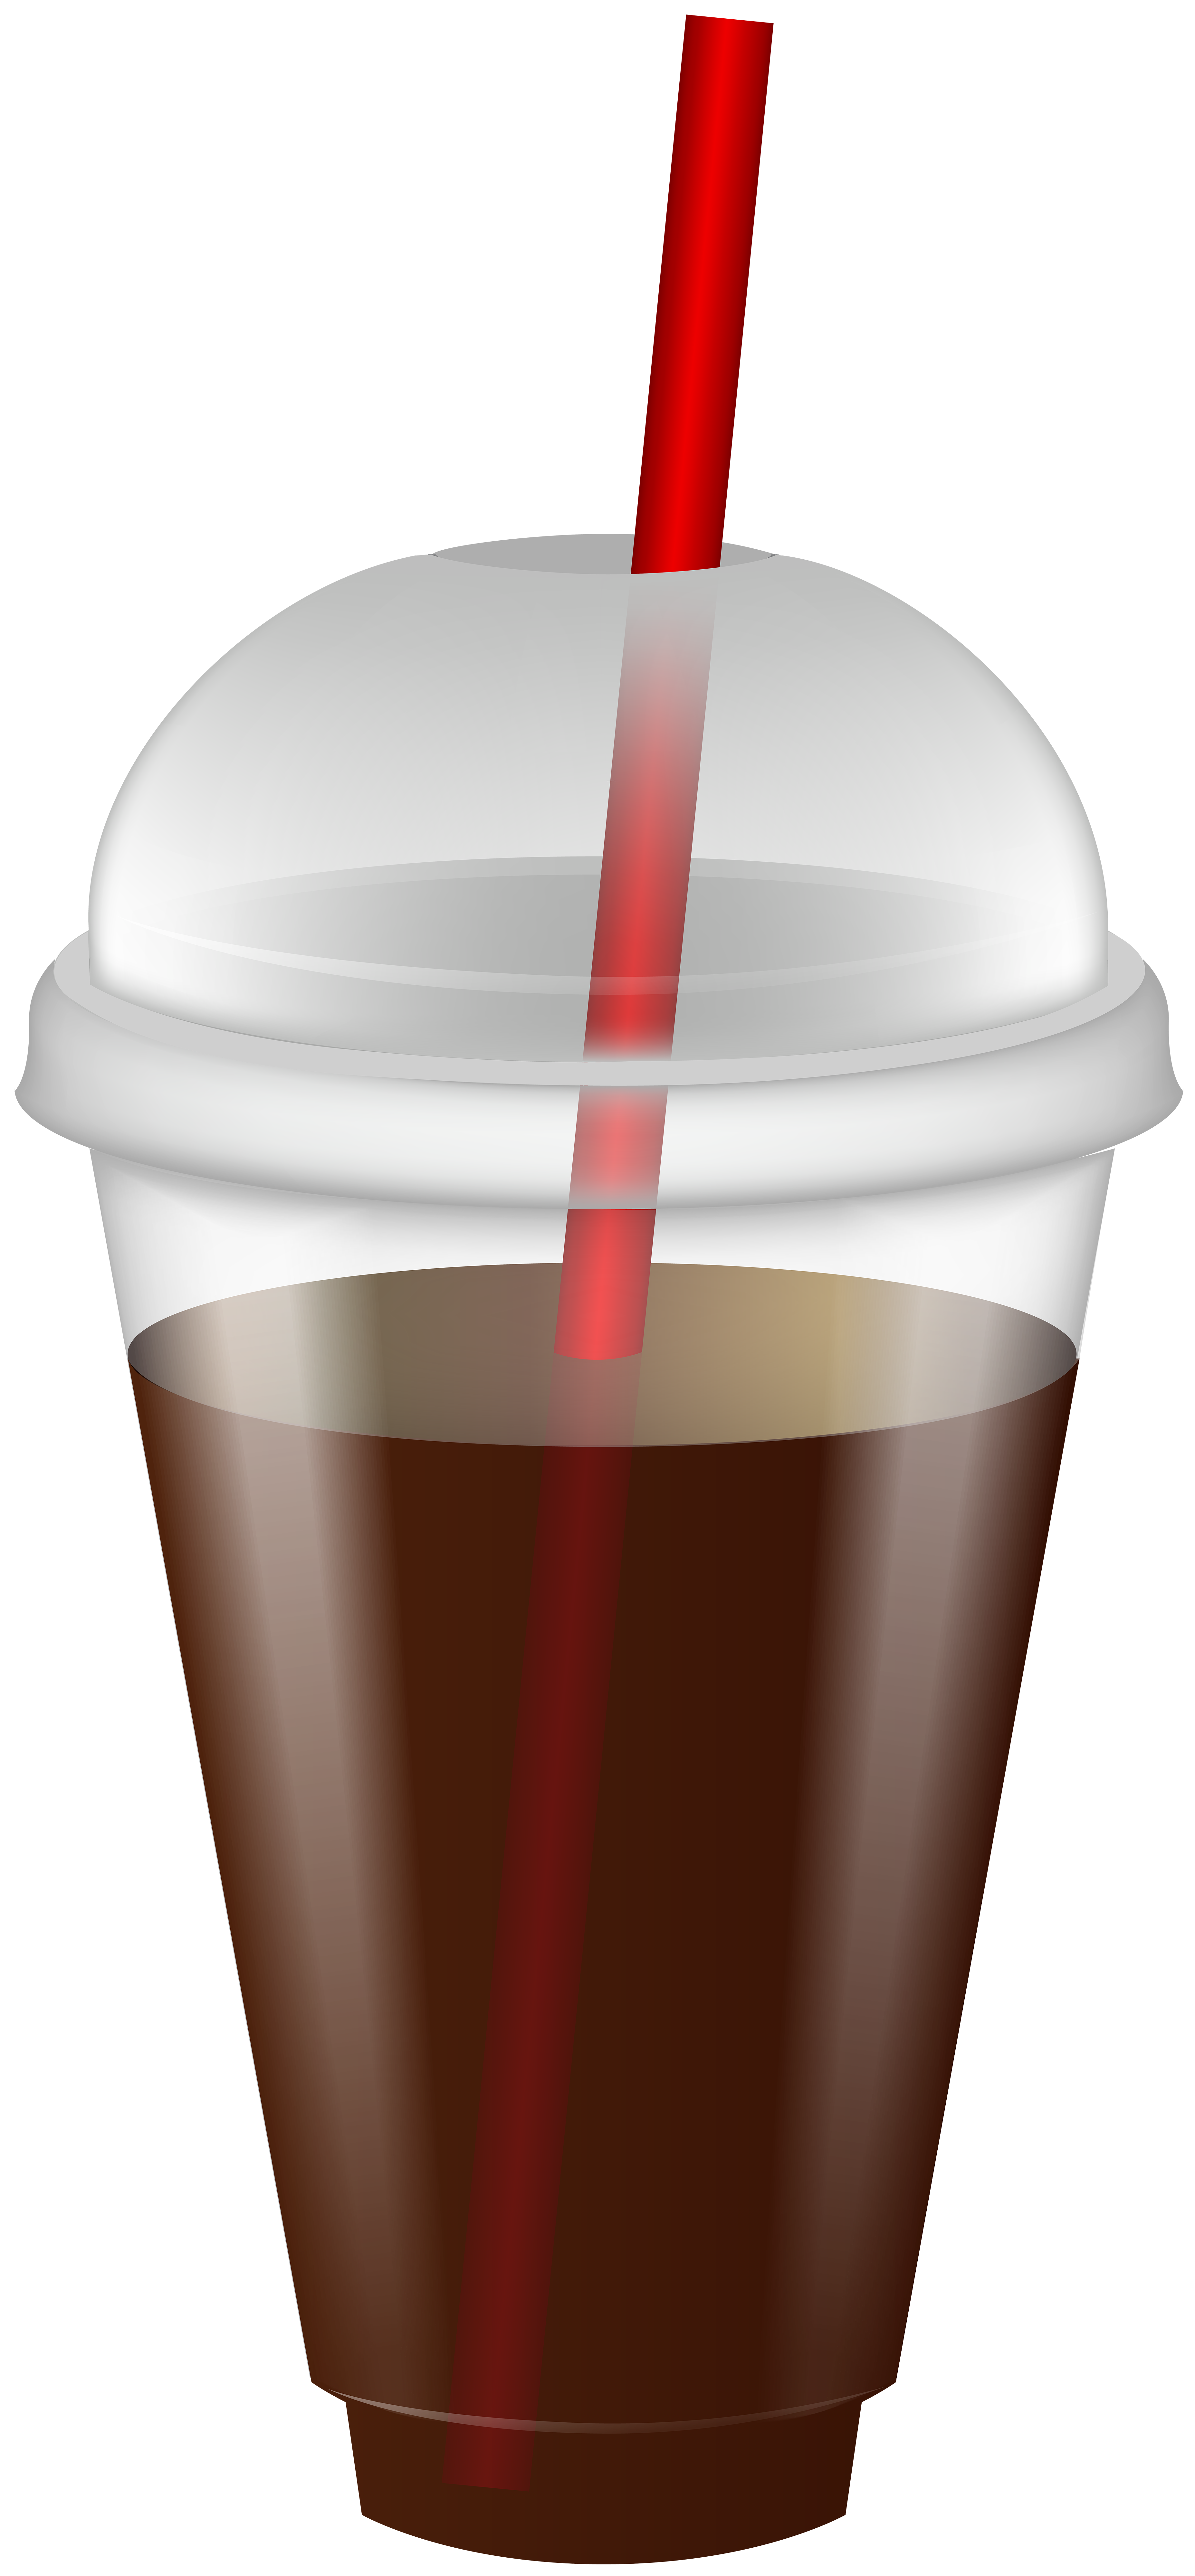 Drink in Plastic Cup with Straw PNG Clip Art Image.